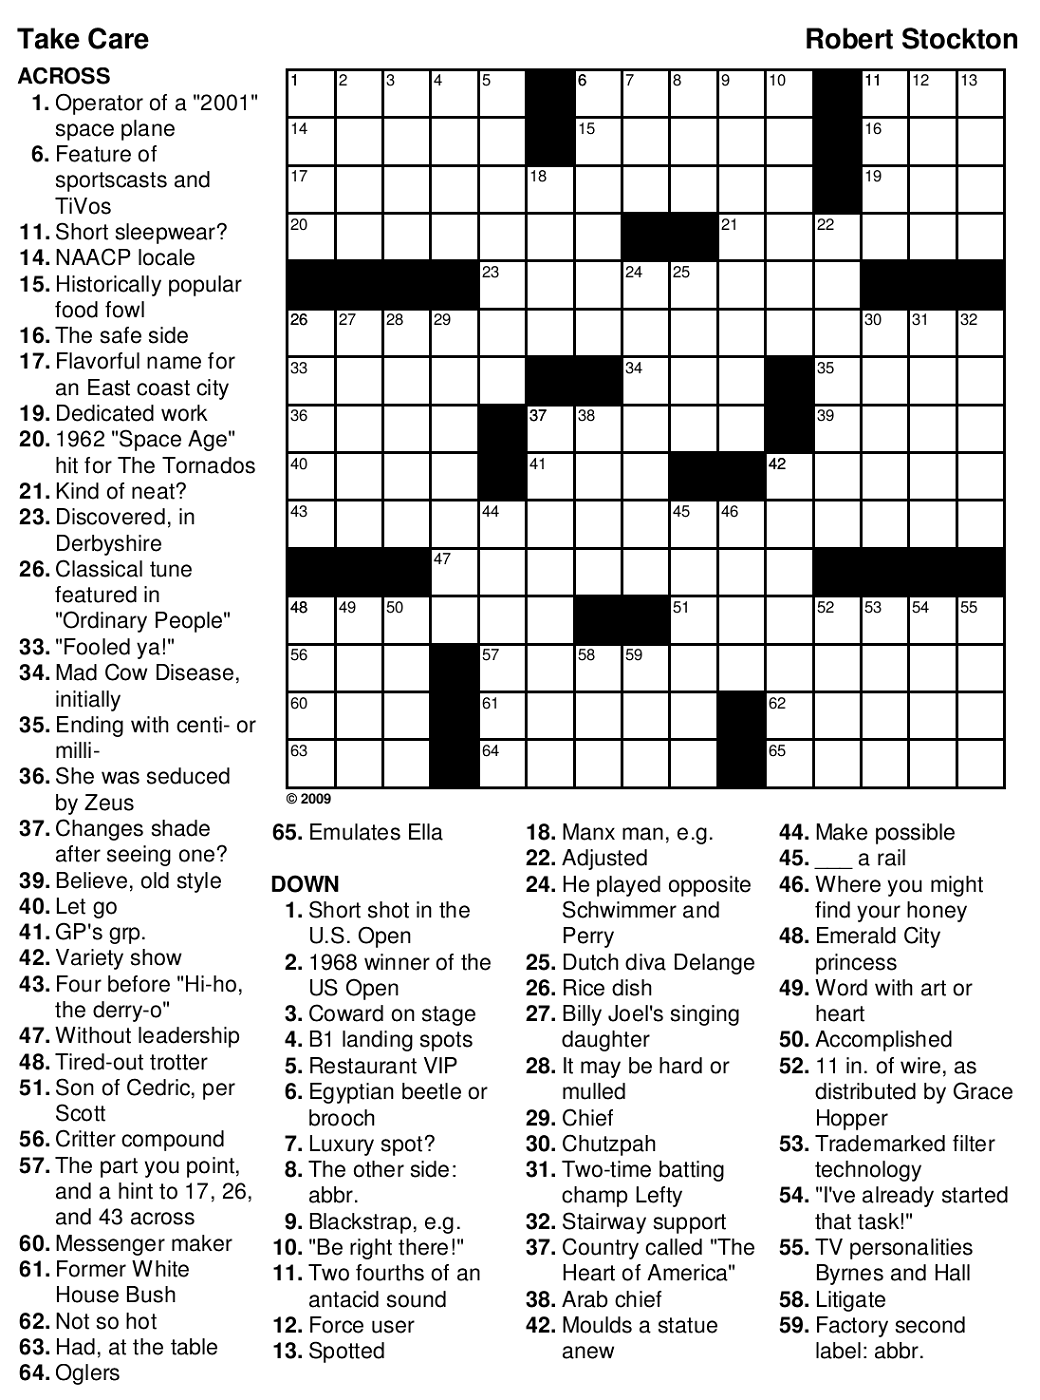 Printable Games For Adults Free Printable Crossword Puzzles Crossword Puzzles Printable Crossword Puzzles [ 1400 x 1040 Pixel ]